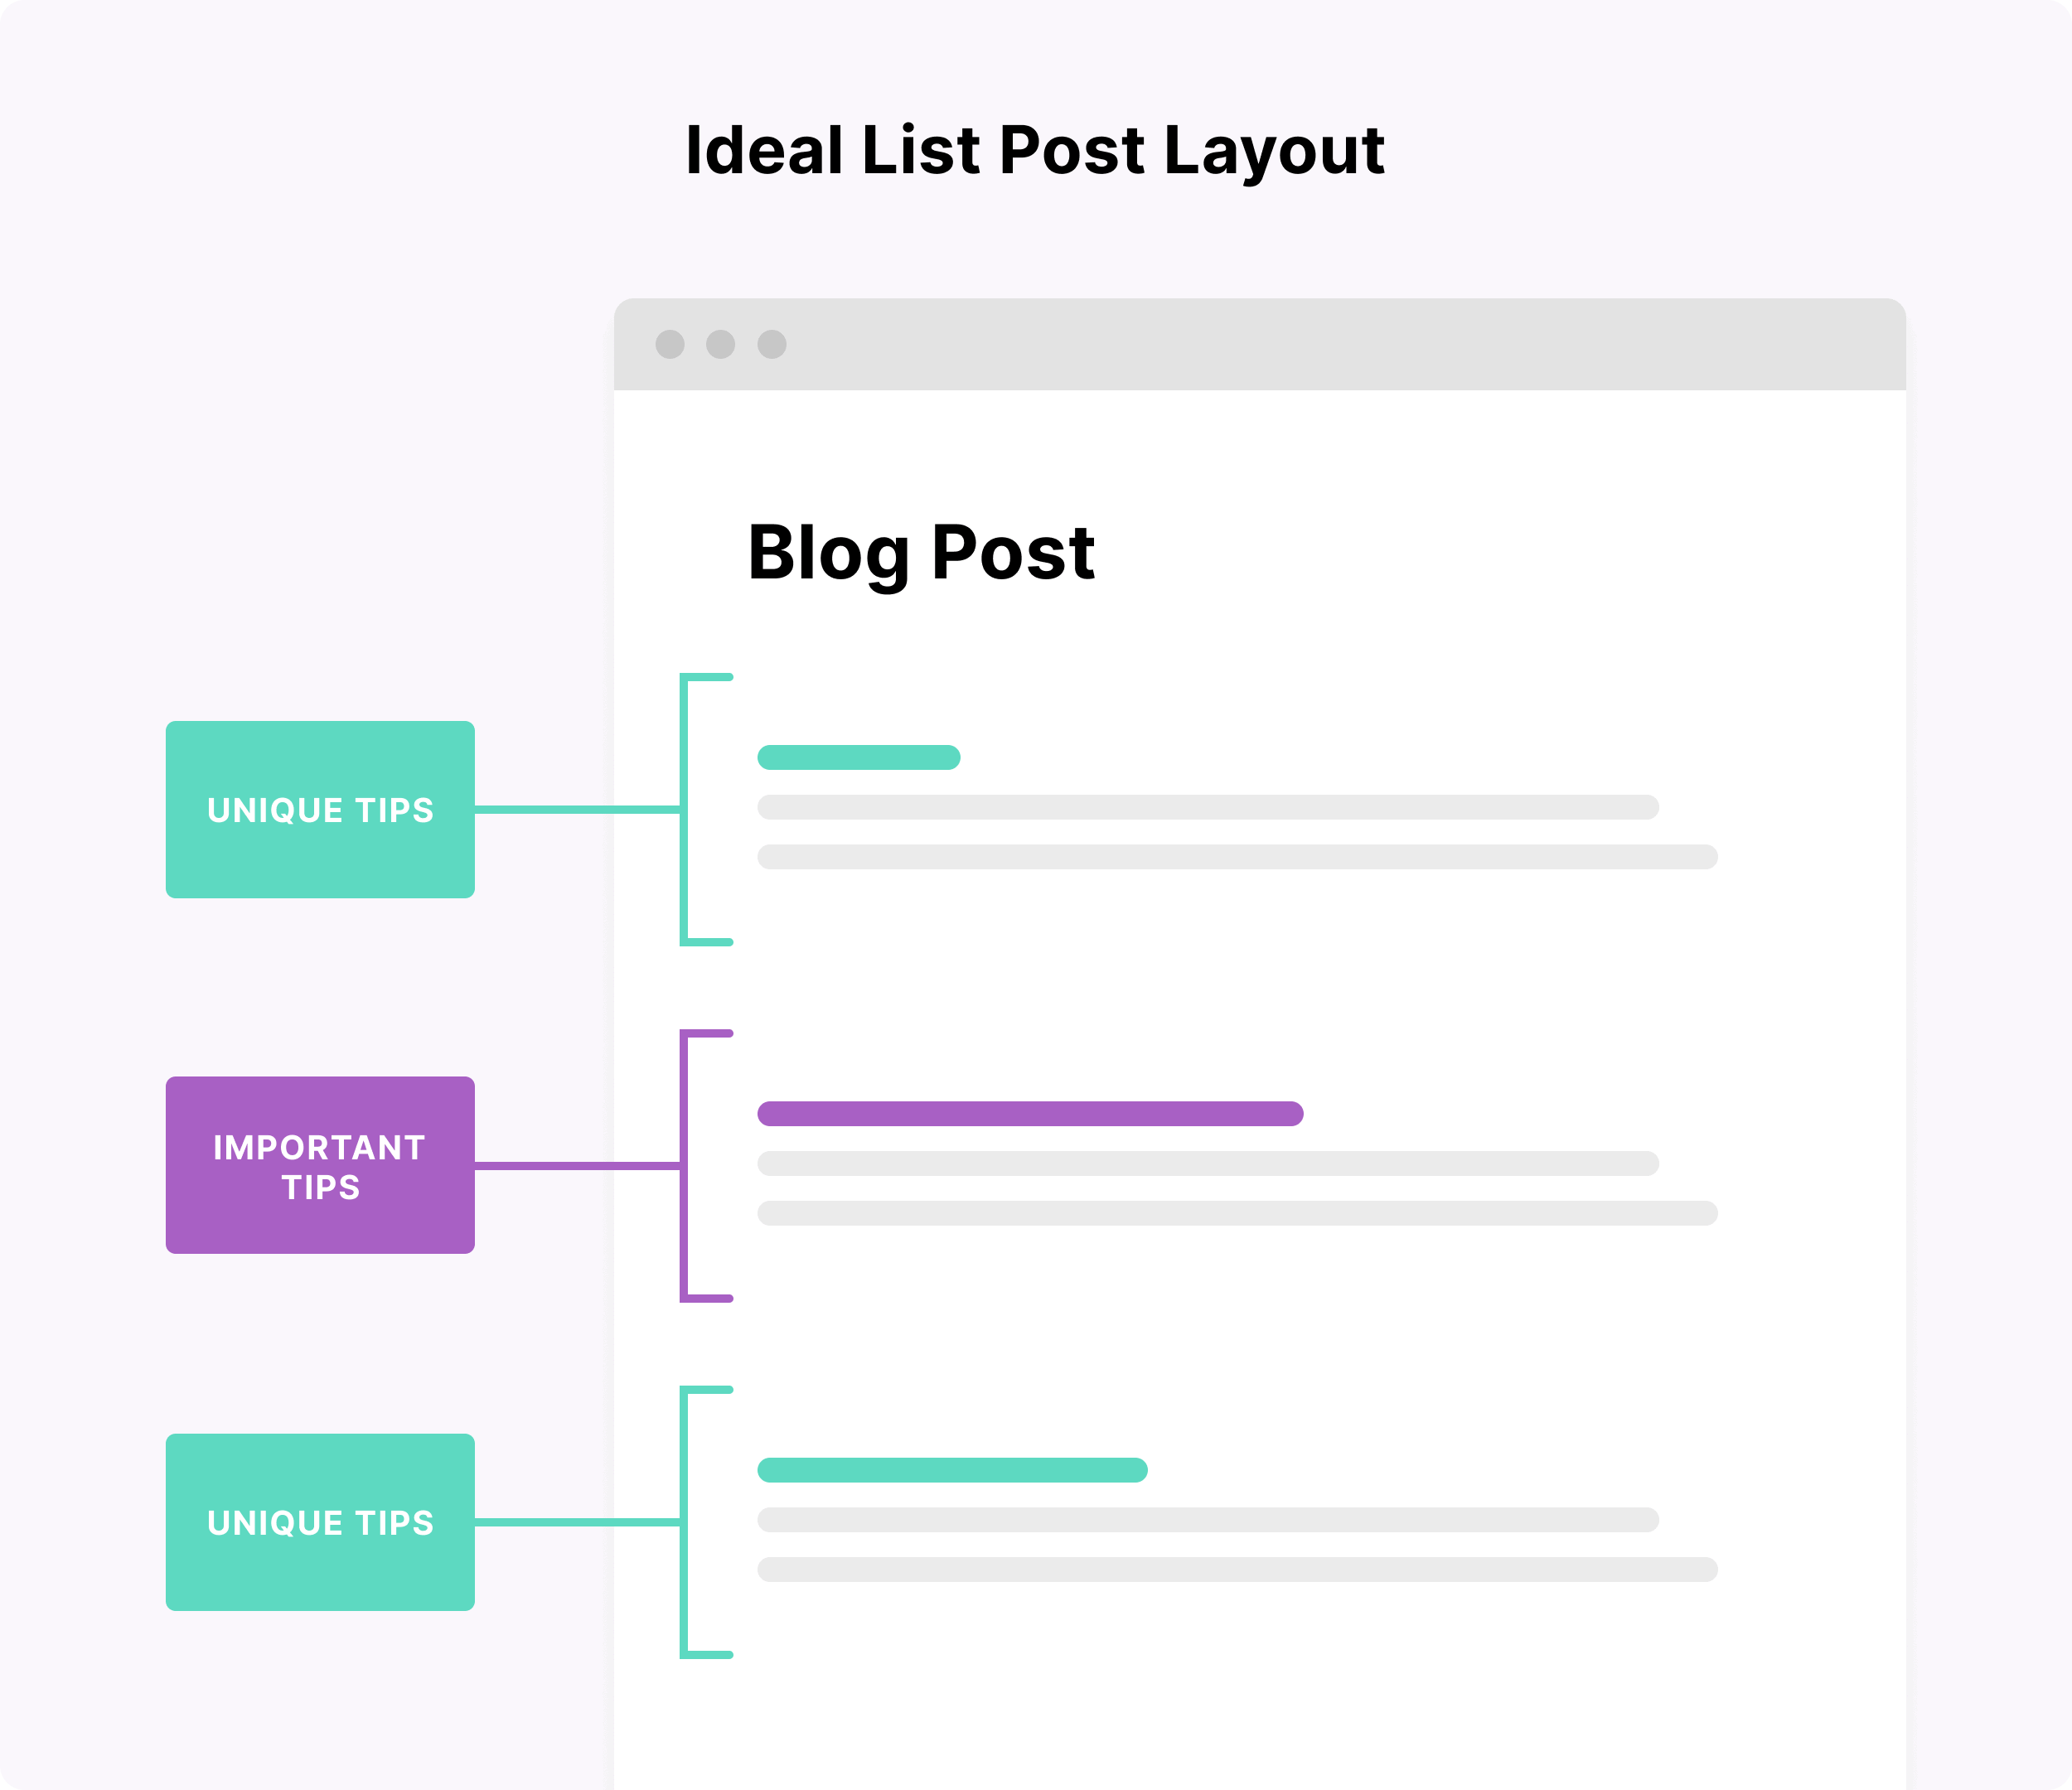 Ideal list post layout